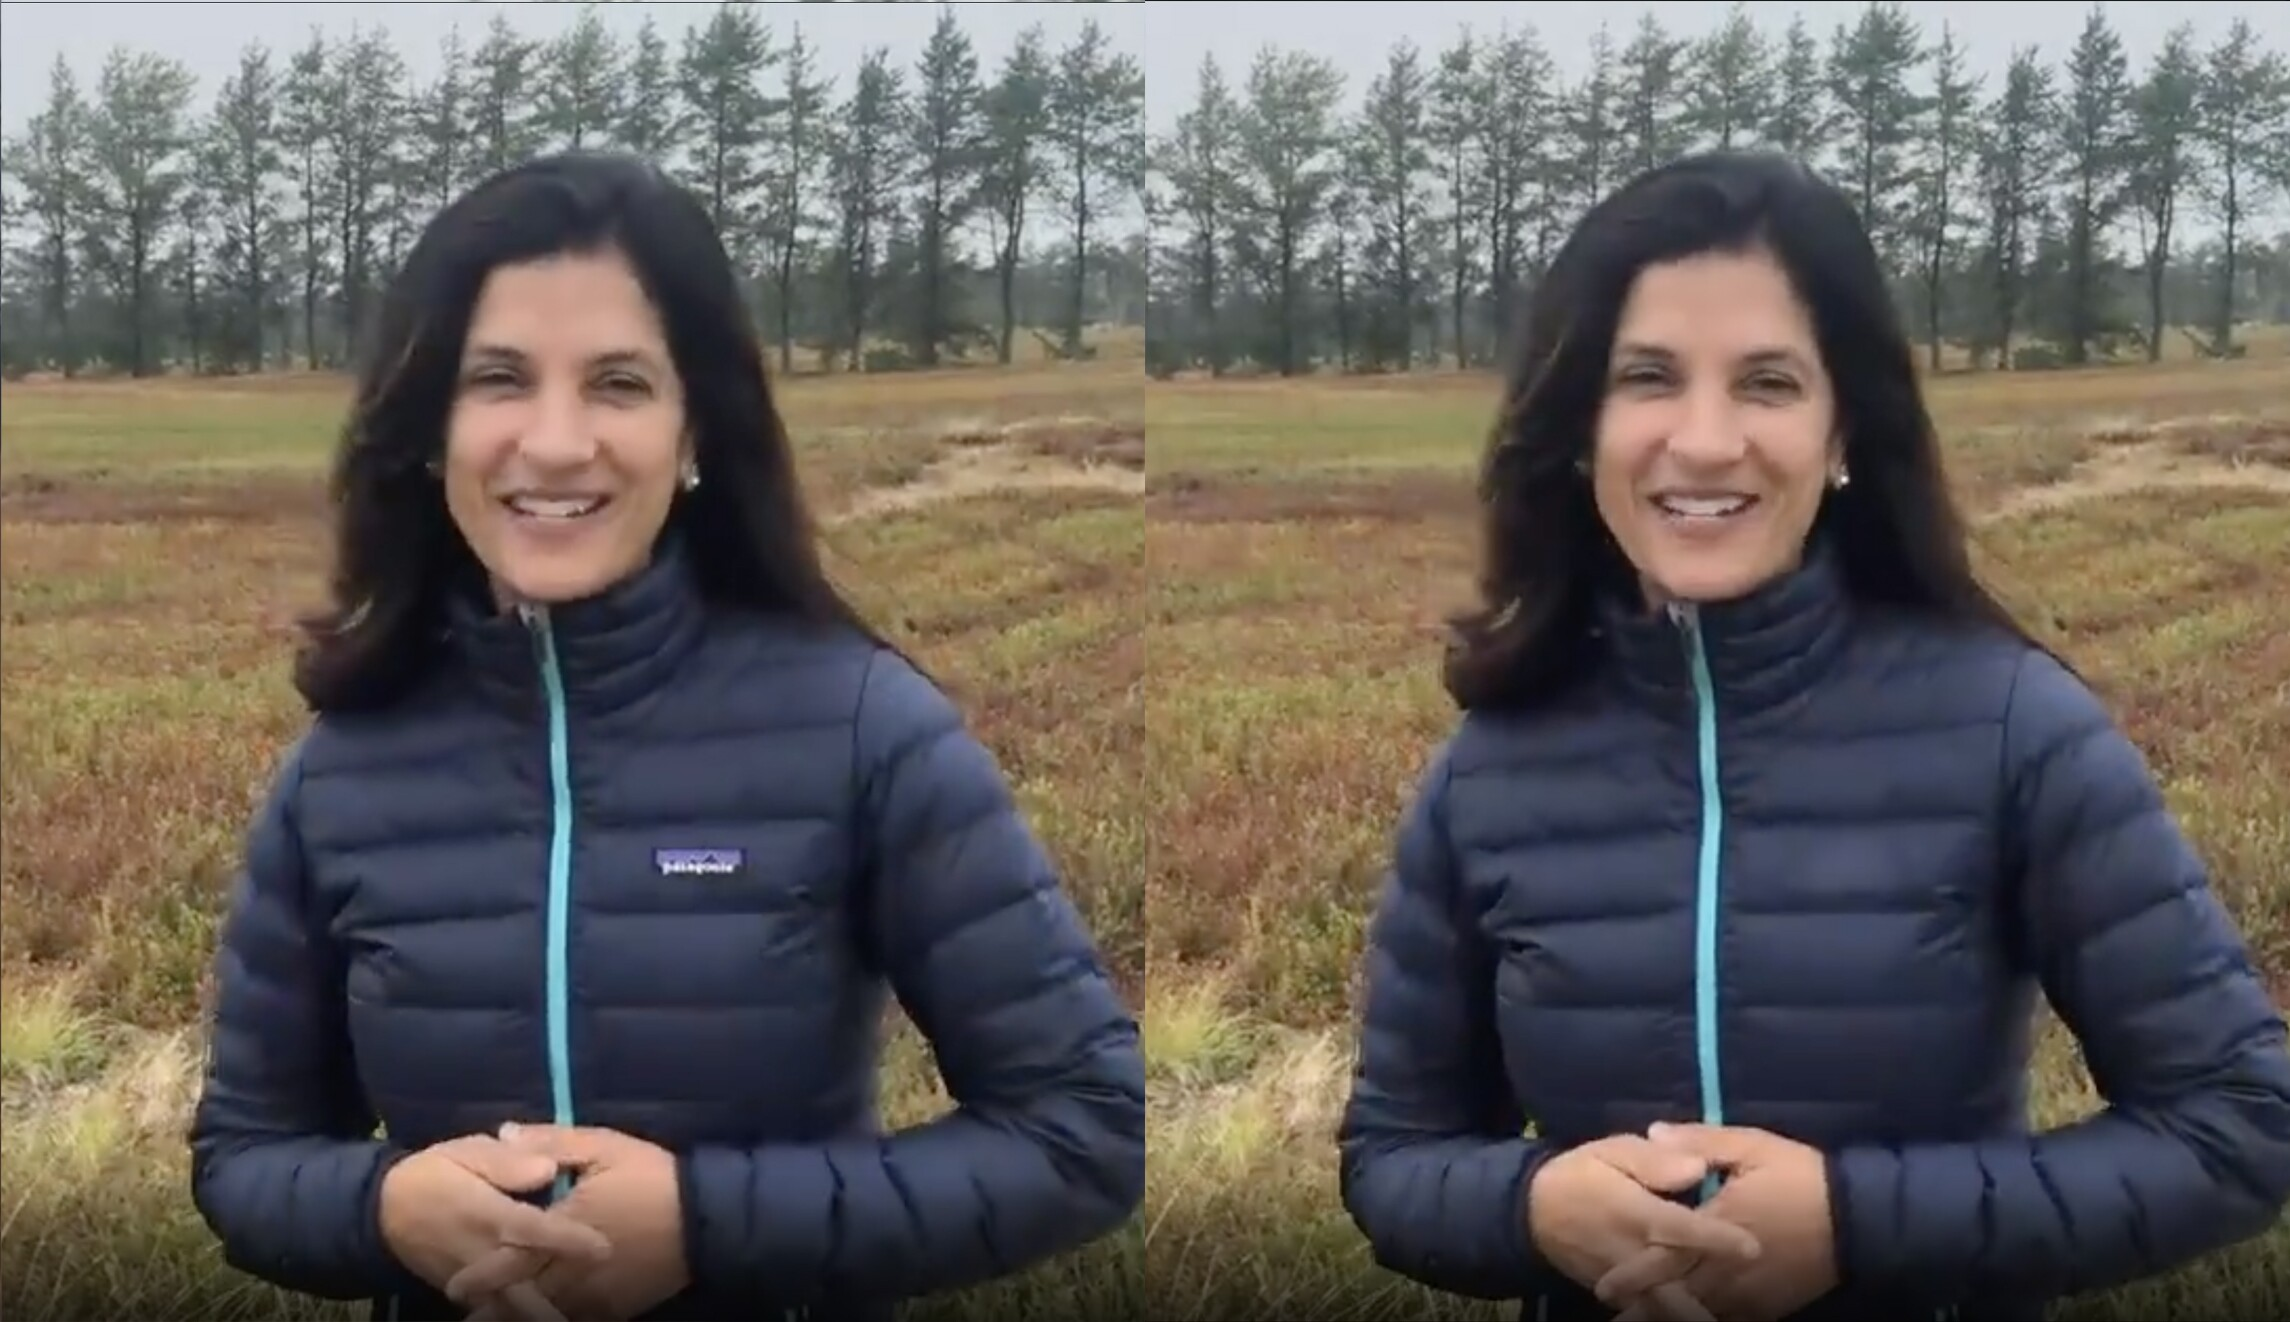 Top Democrat from L.L. Bean home town erases logo from her Patagonia jacket in campaign video